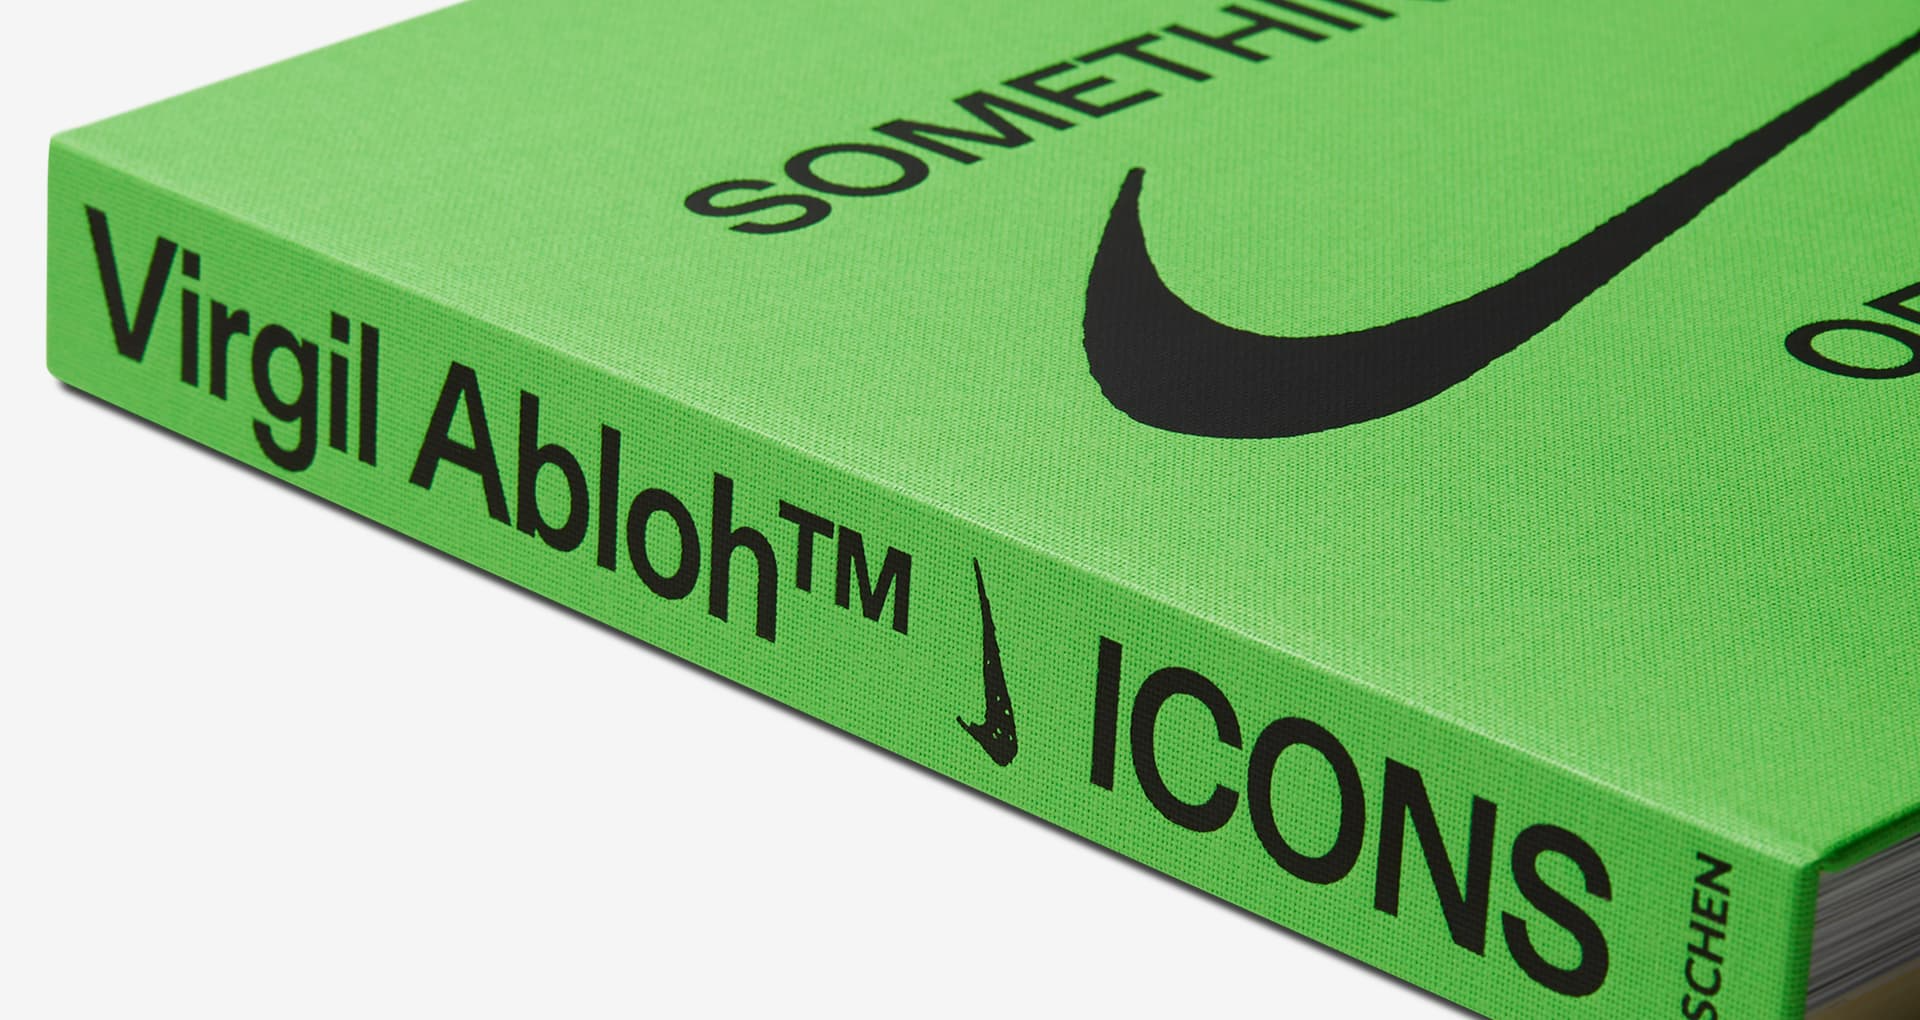 virgil-abloh-icons-release-date-icons-999.png